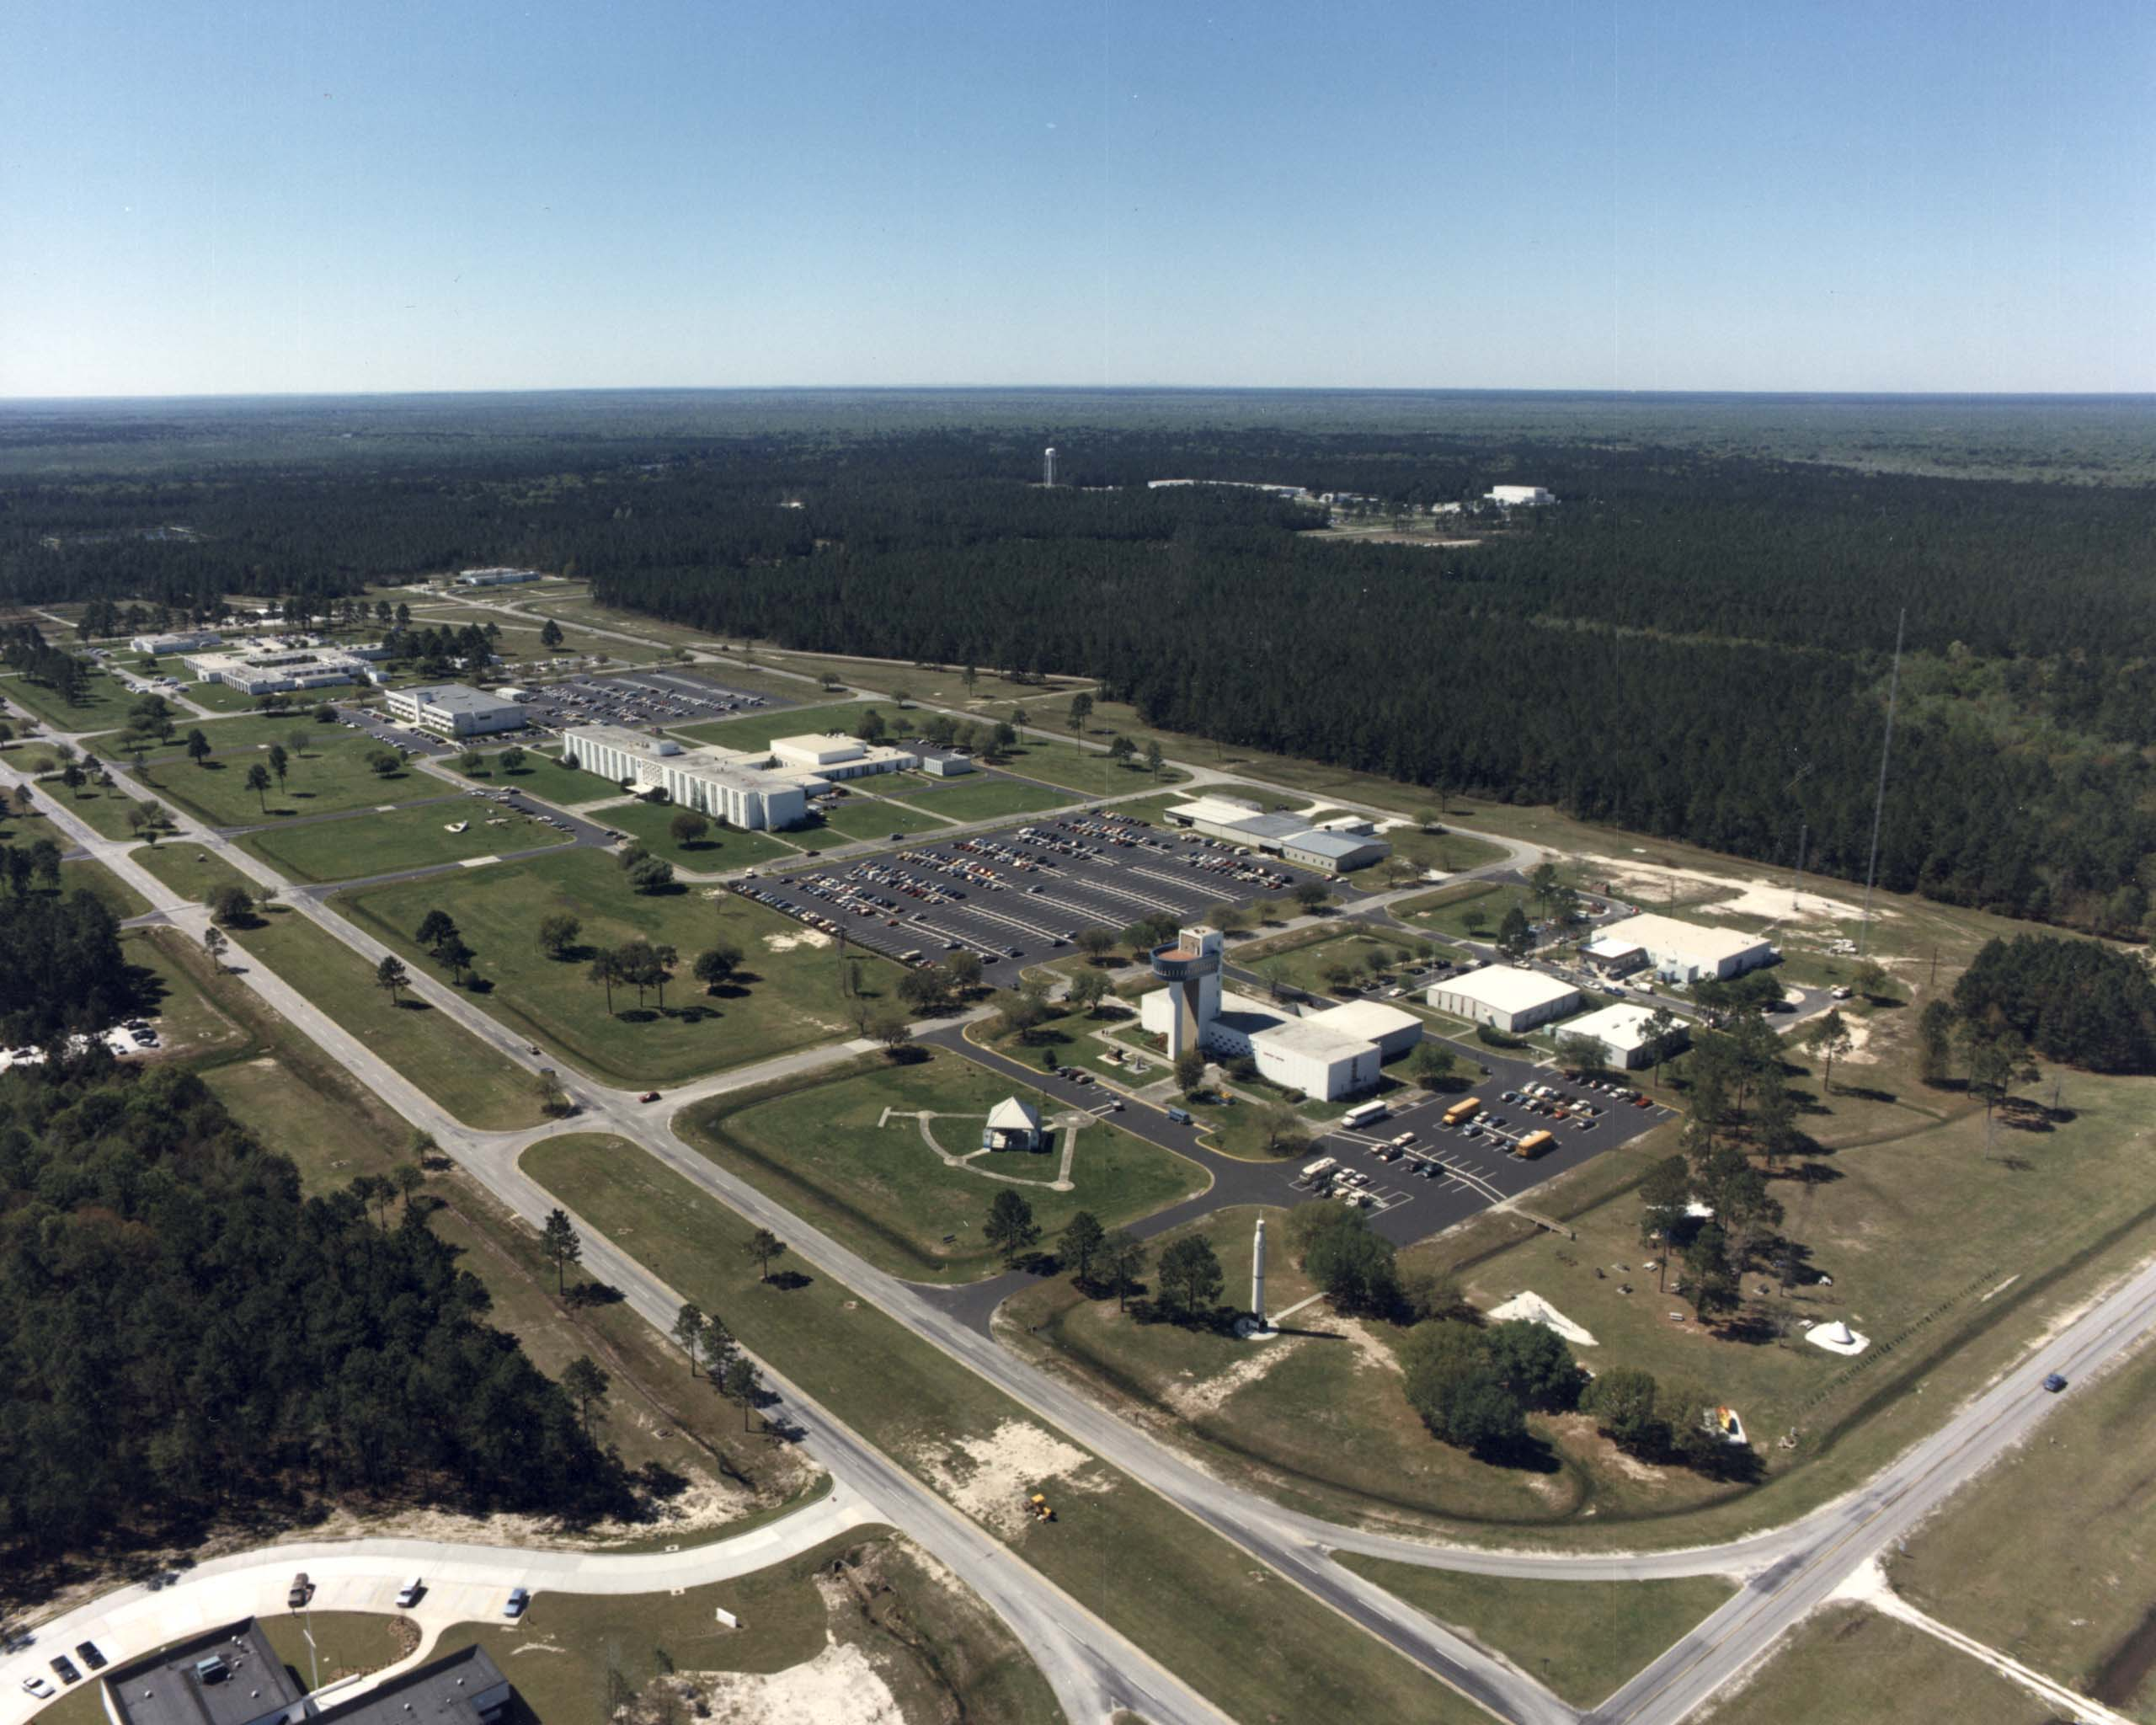 stennis space center dating Things to do around stennis space center - stennis space center, ms - aarp in your.